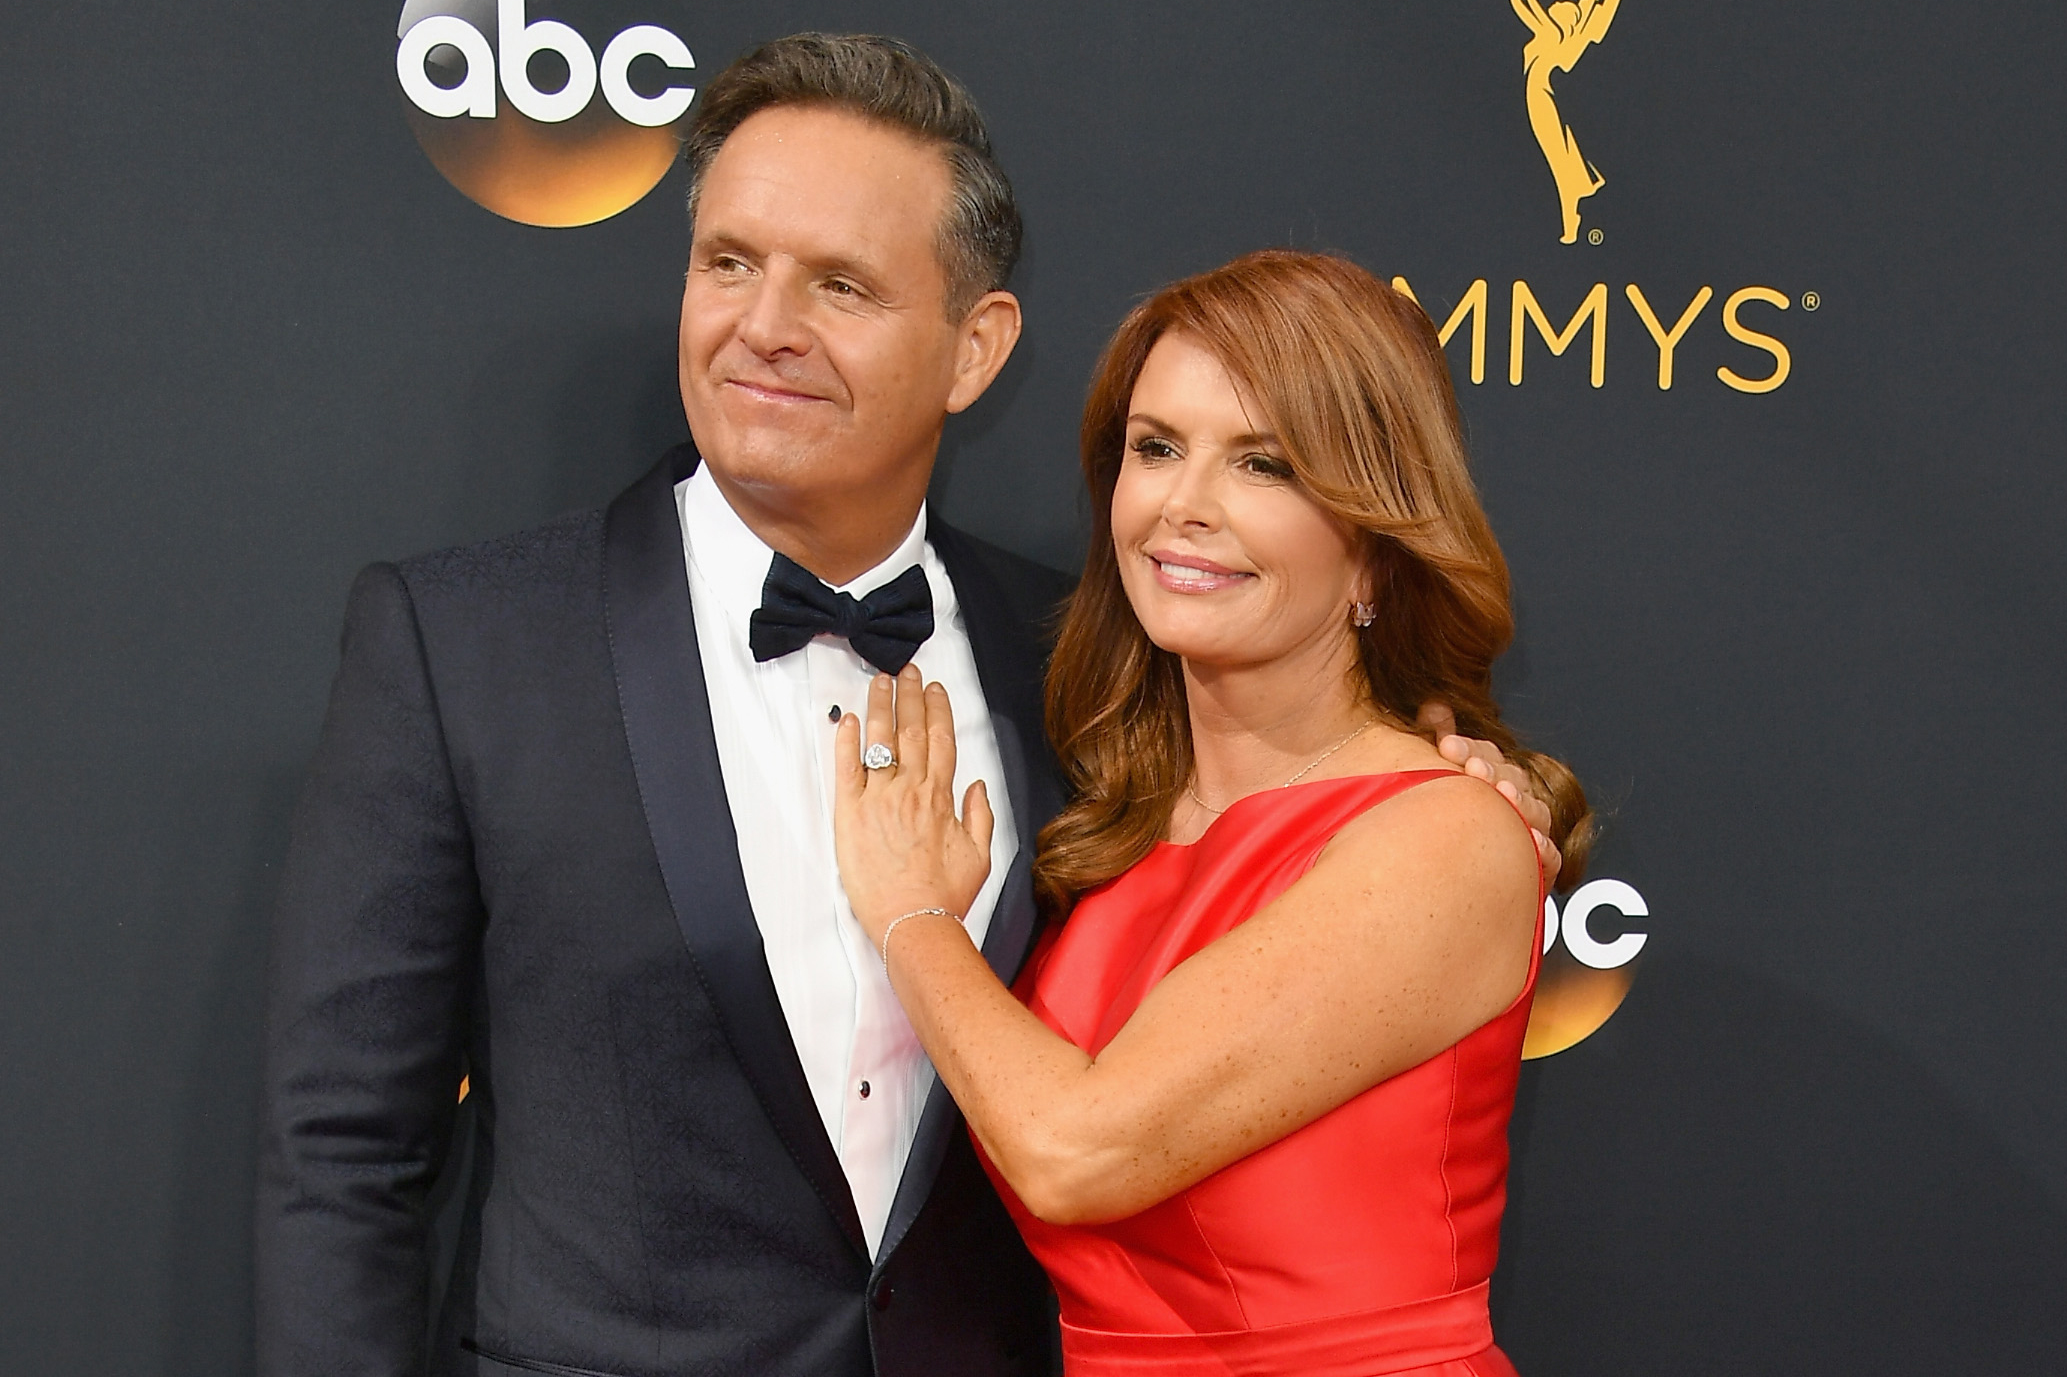 Mark Burnett and Roma Downey attend the 68th Annual Primetime Emmy Awards at Microsoft Theater on Sept. 18, 2016 in Los Angeles.